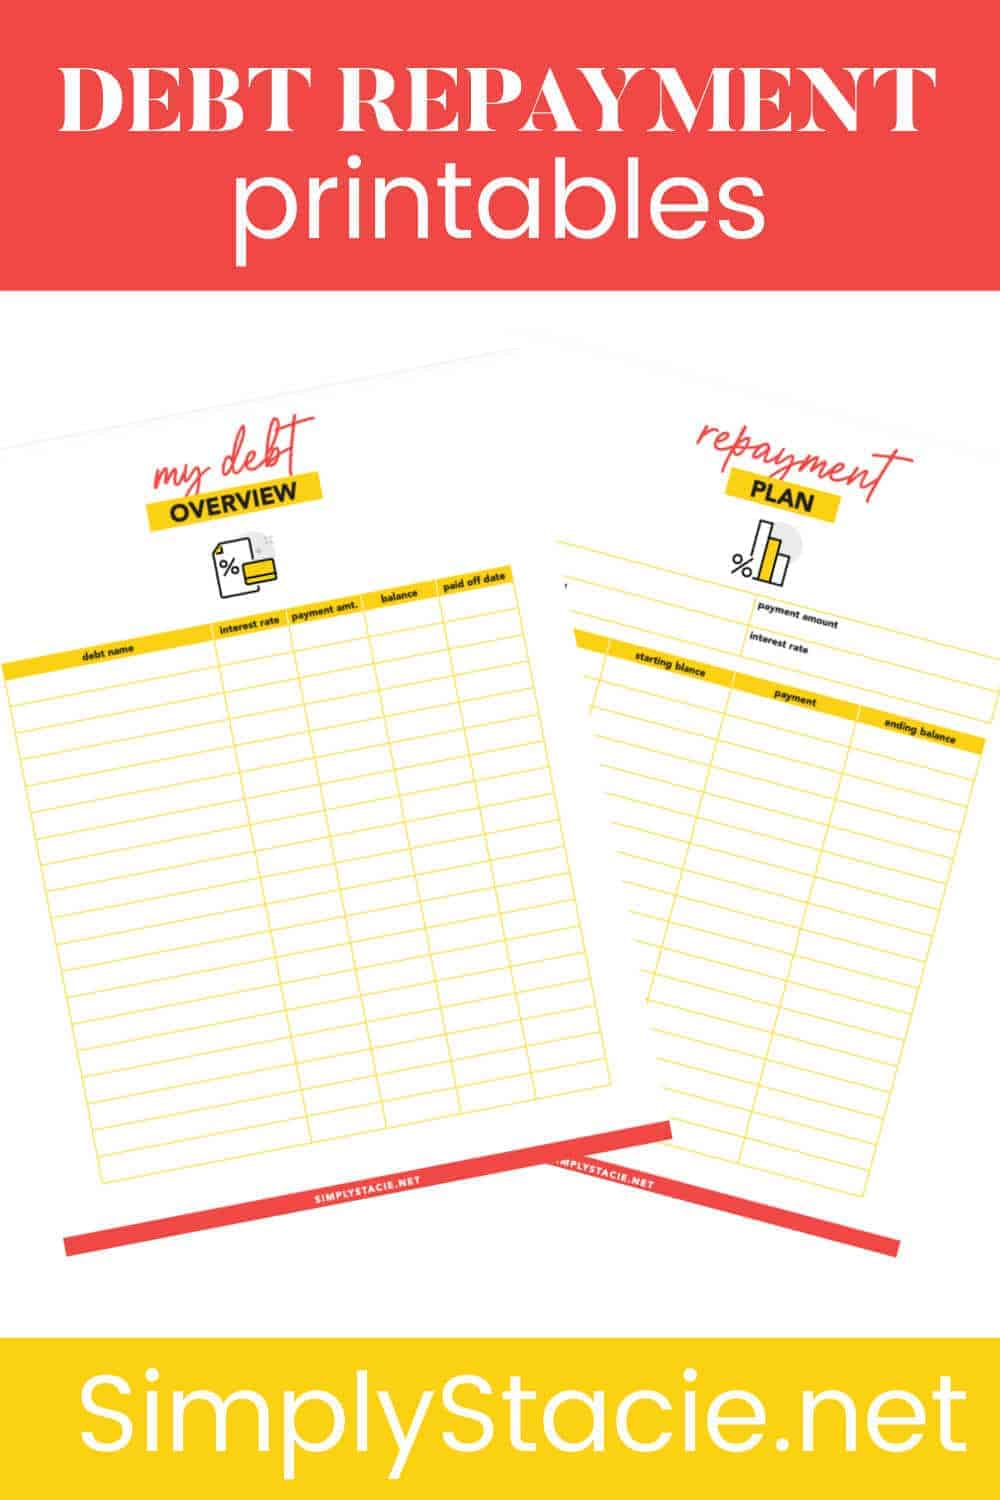 Debt Repayment Printables - Get organized and focused on improving your finances with these free debt repayment printables! This set includes a Debt Overview and Debt Repayment Plan.